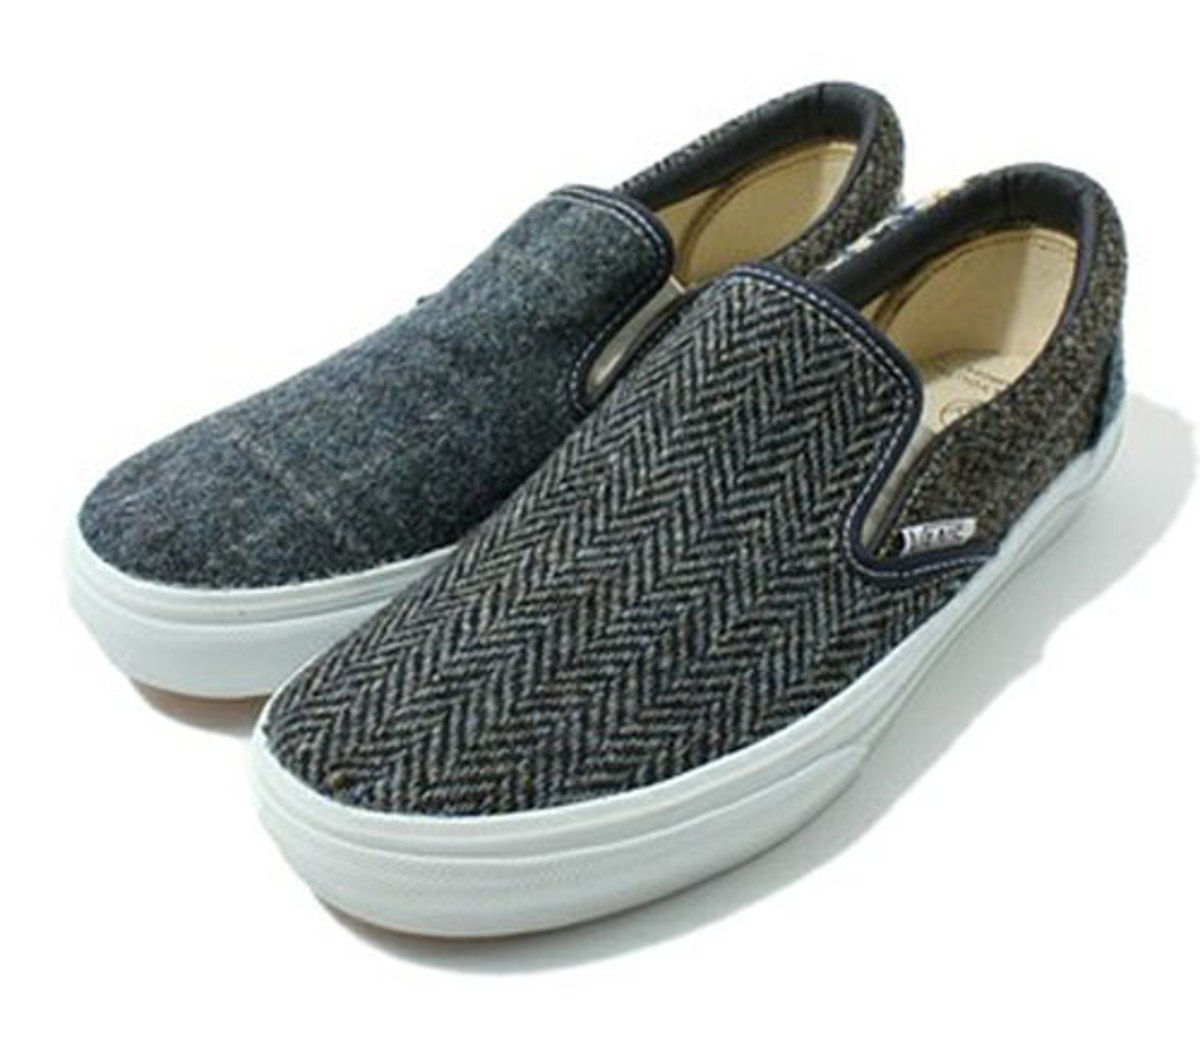 beauty-and-youth-vans-harris-tweed-pack-07